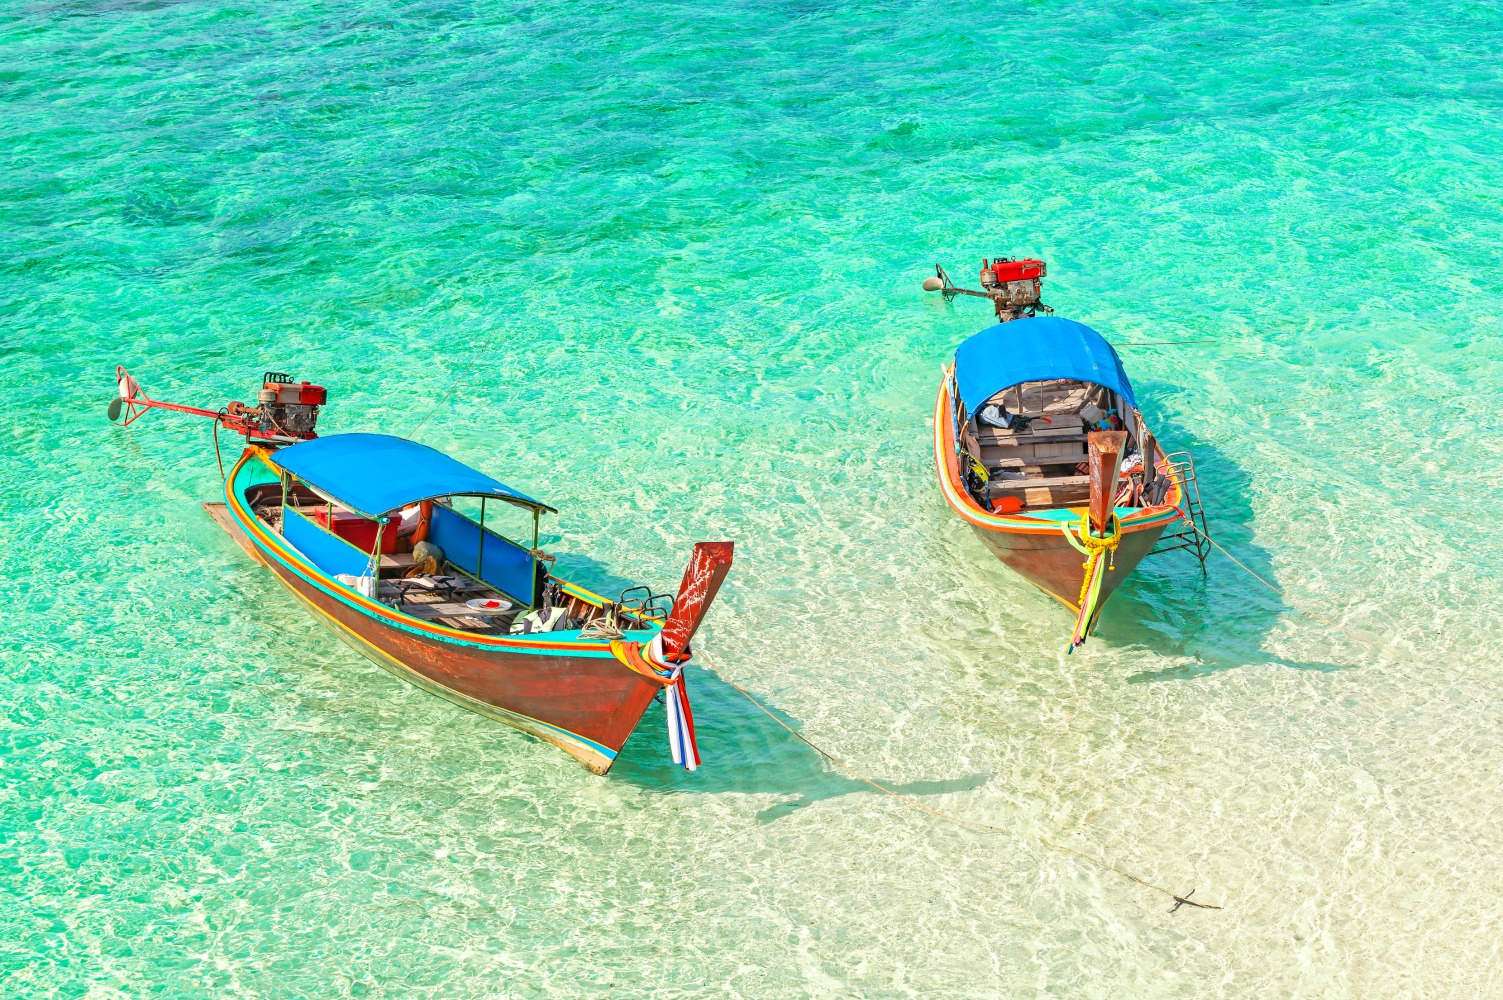 Two anchored boats floating on a shallow water, tropical holidays concept.